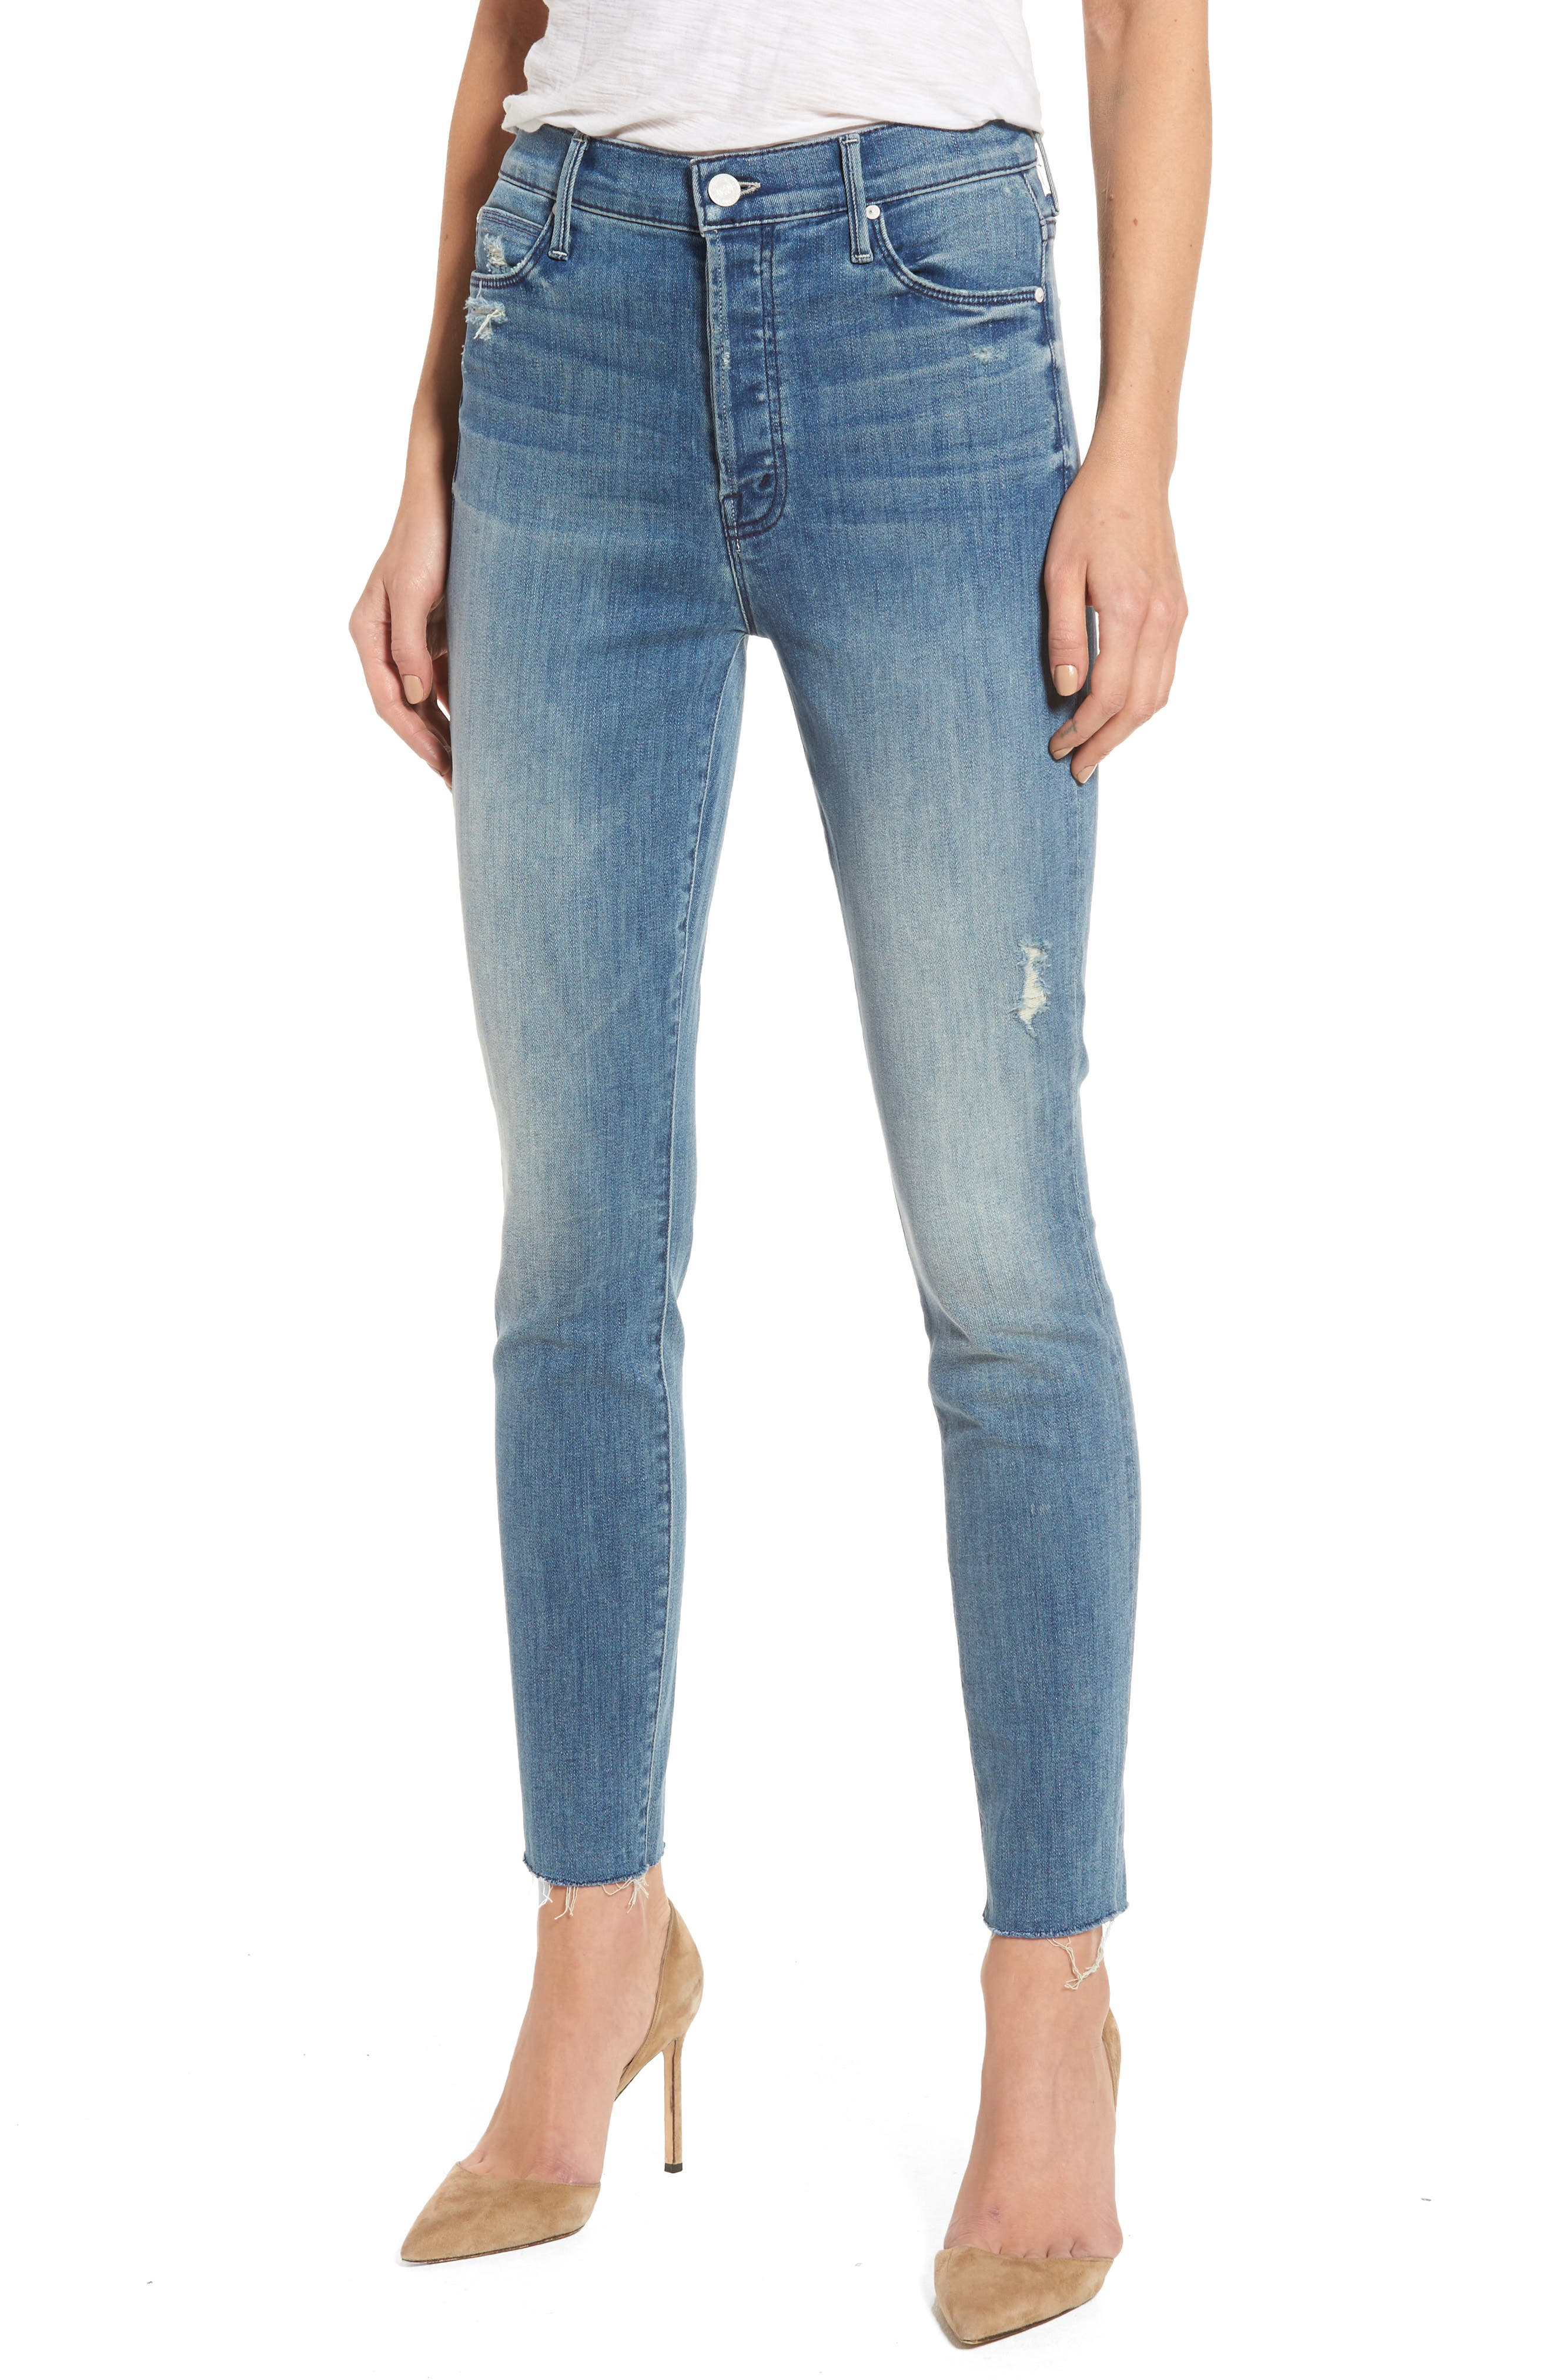 MOTHER, The Stunner Frayed Ankle Skinny Jeans, Main thumbnail 1, color, GRAFITTI GIRL